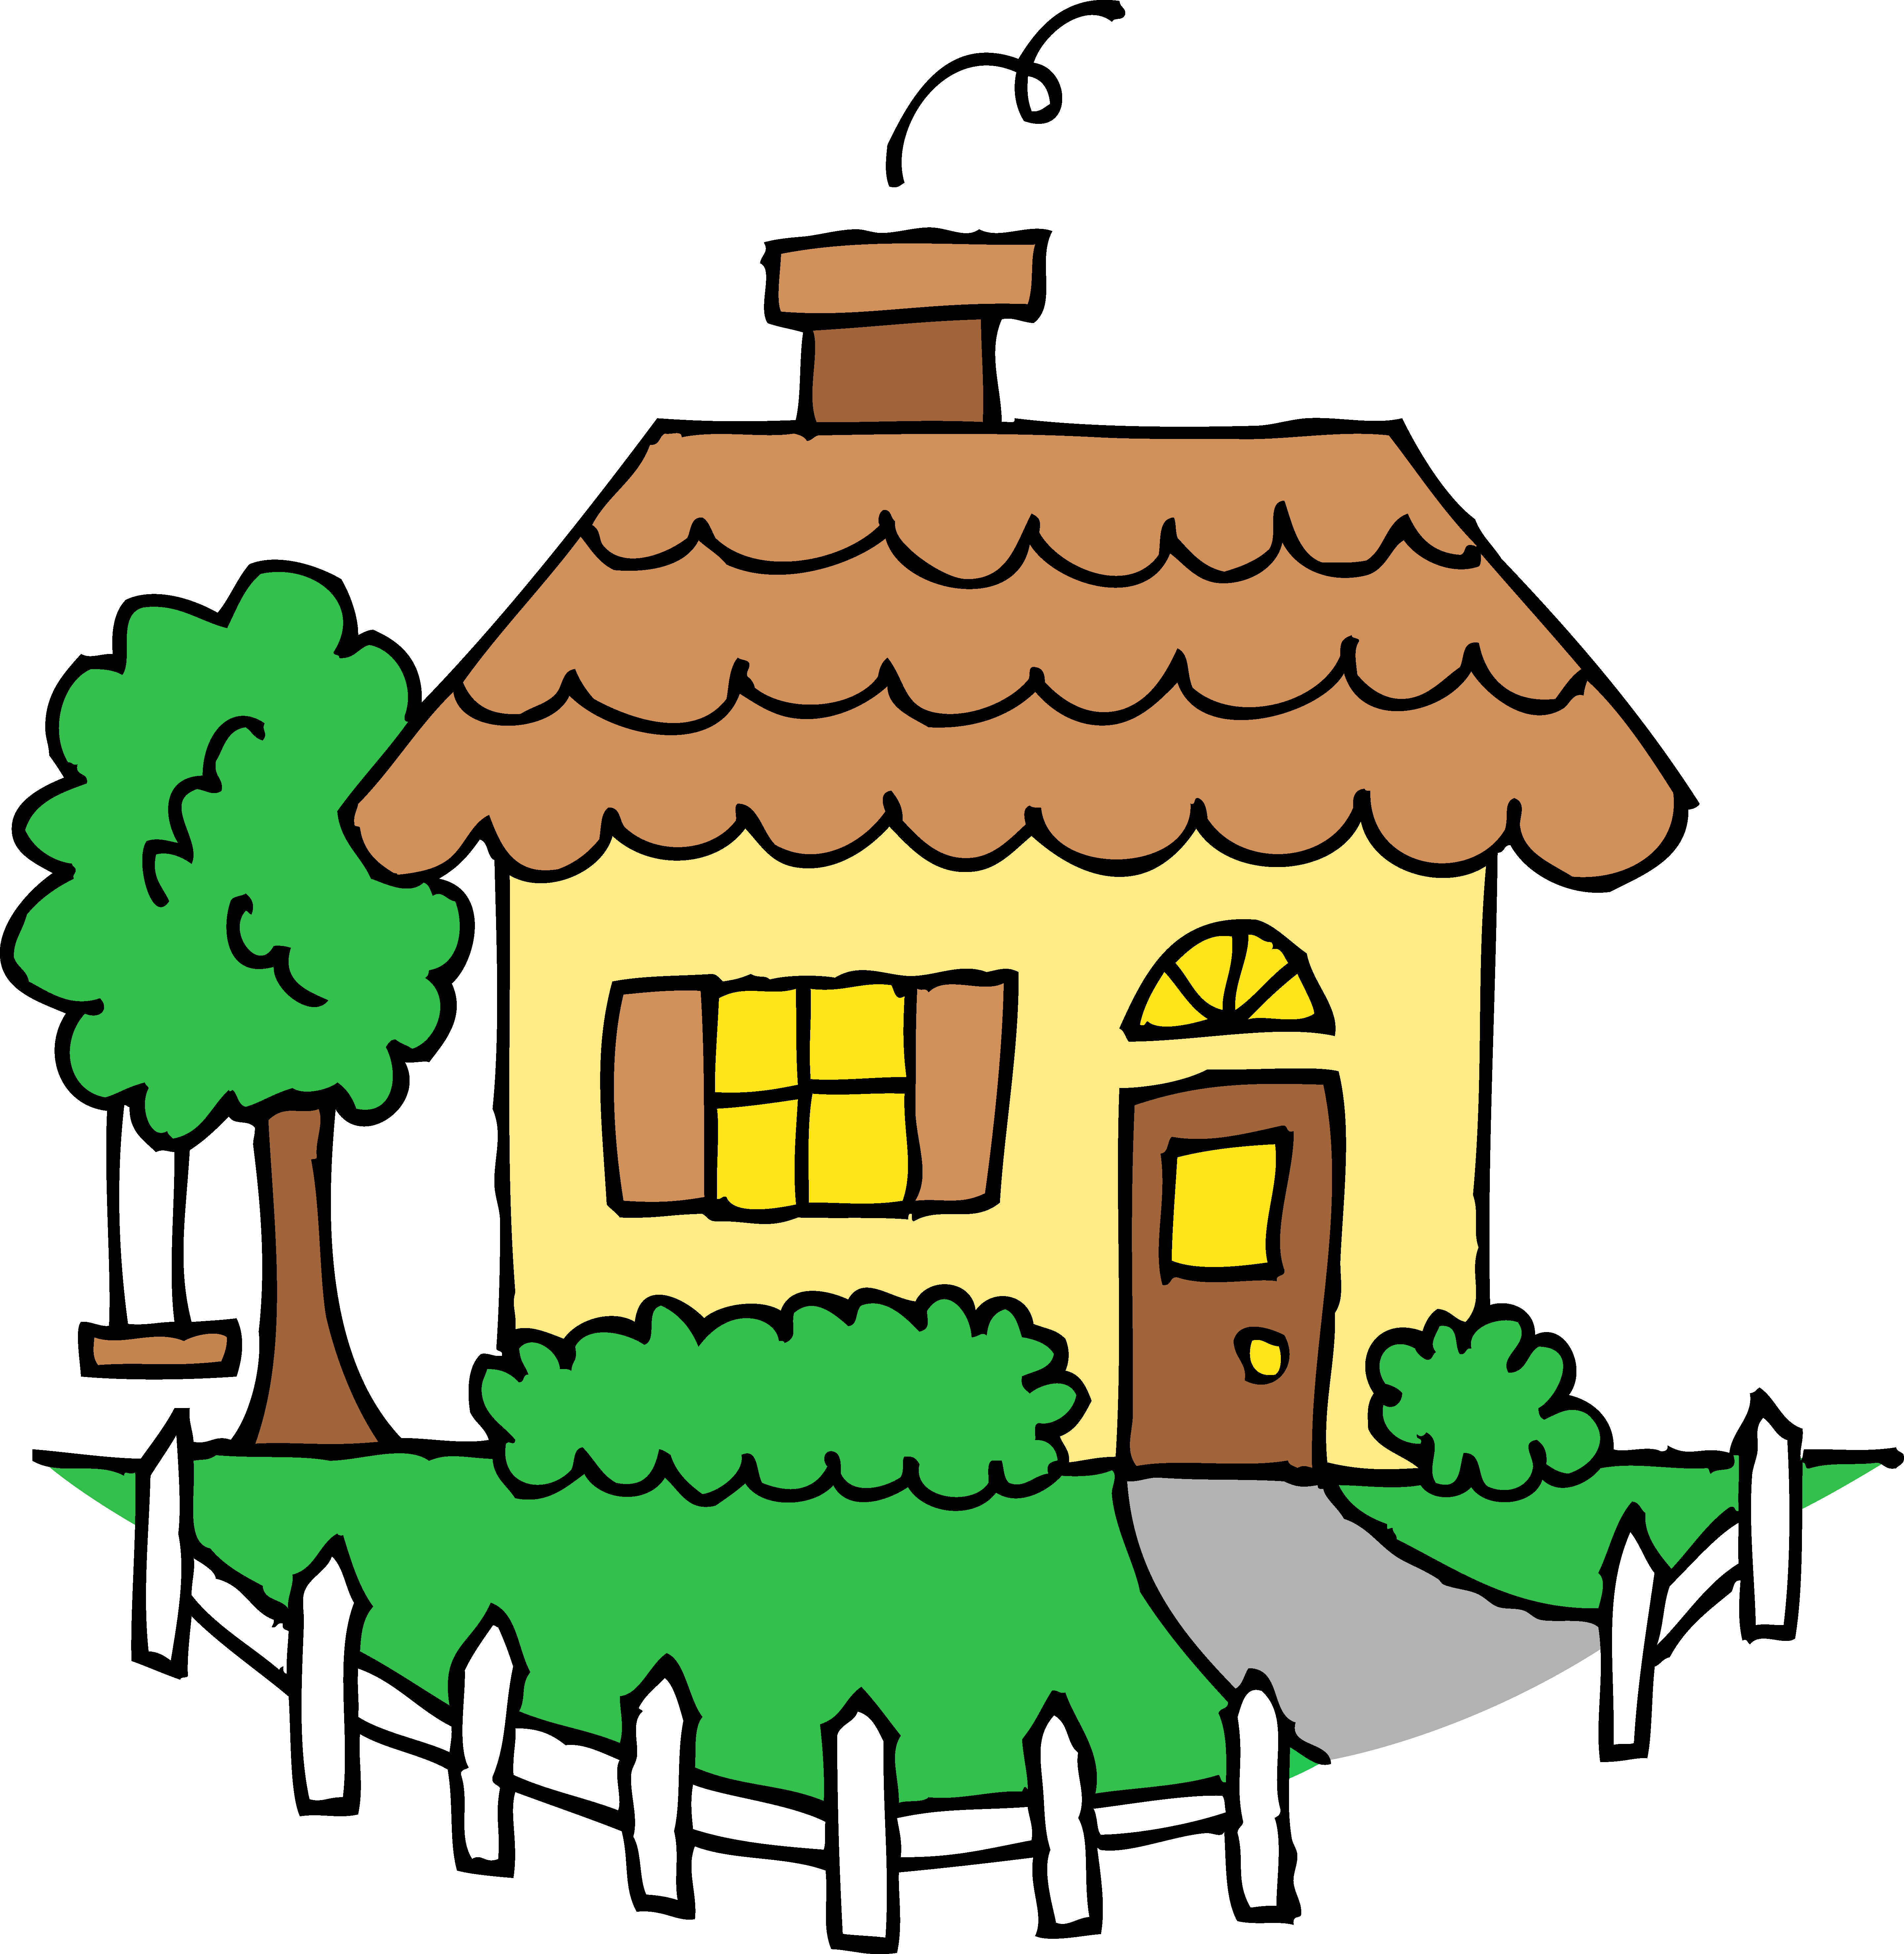 Free Images House, Download Free Clip Art, Free Clip Art on.